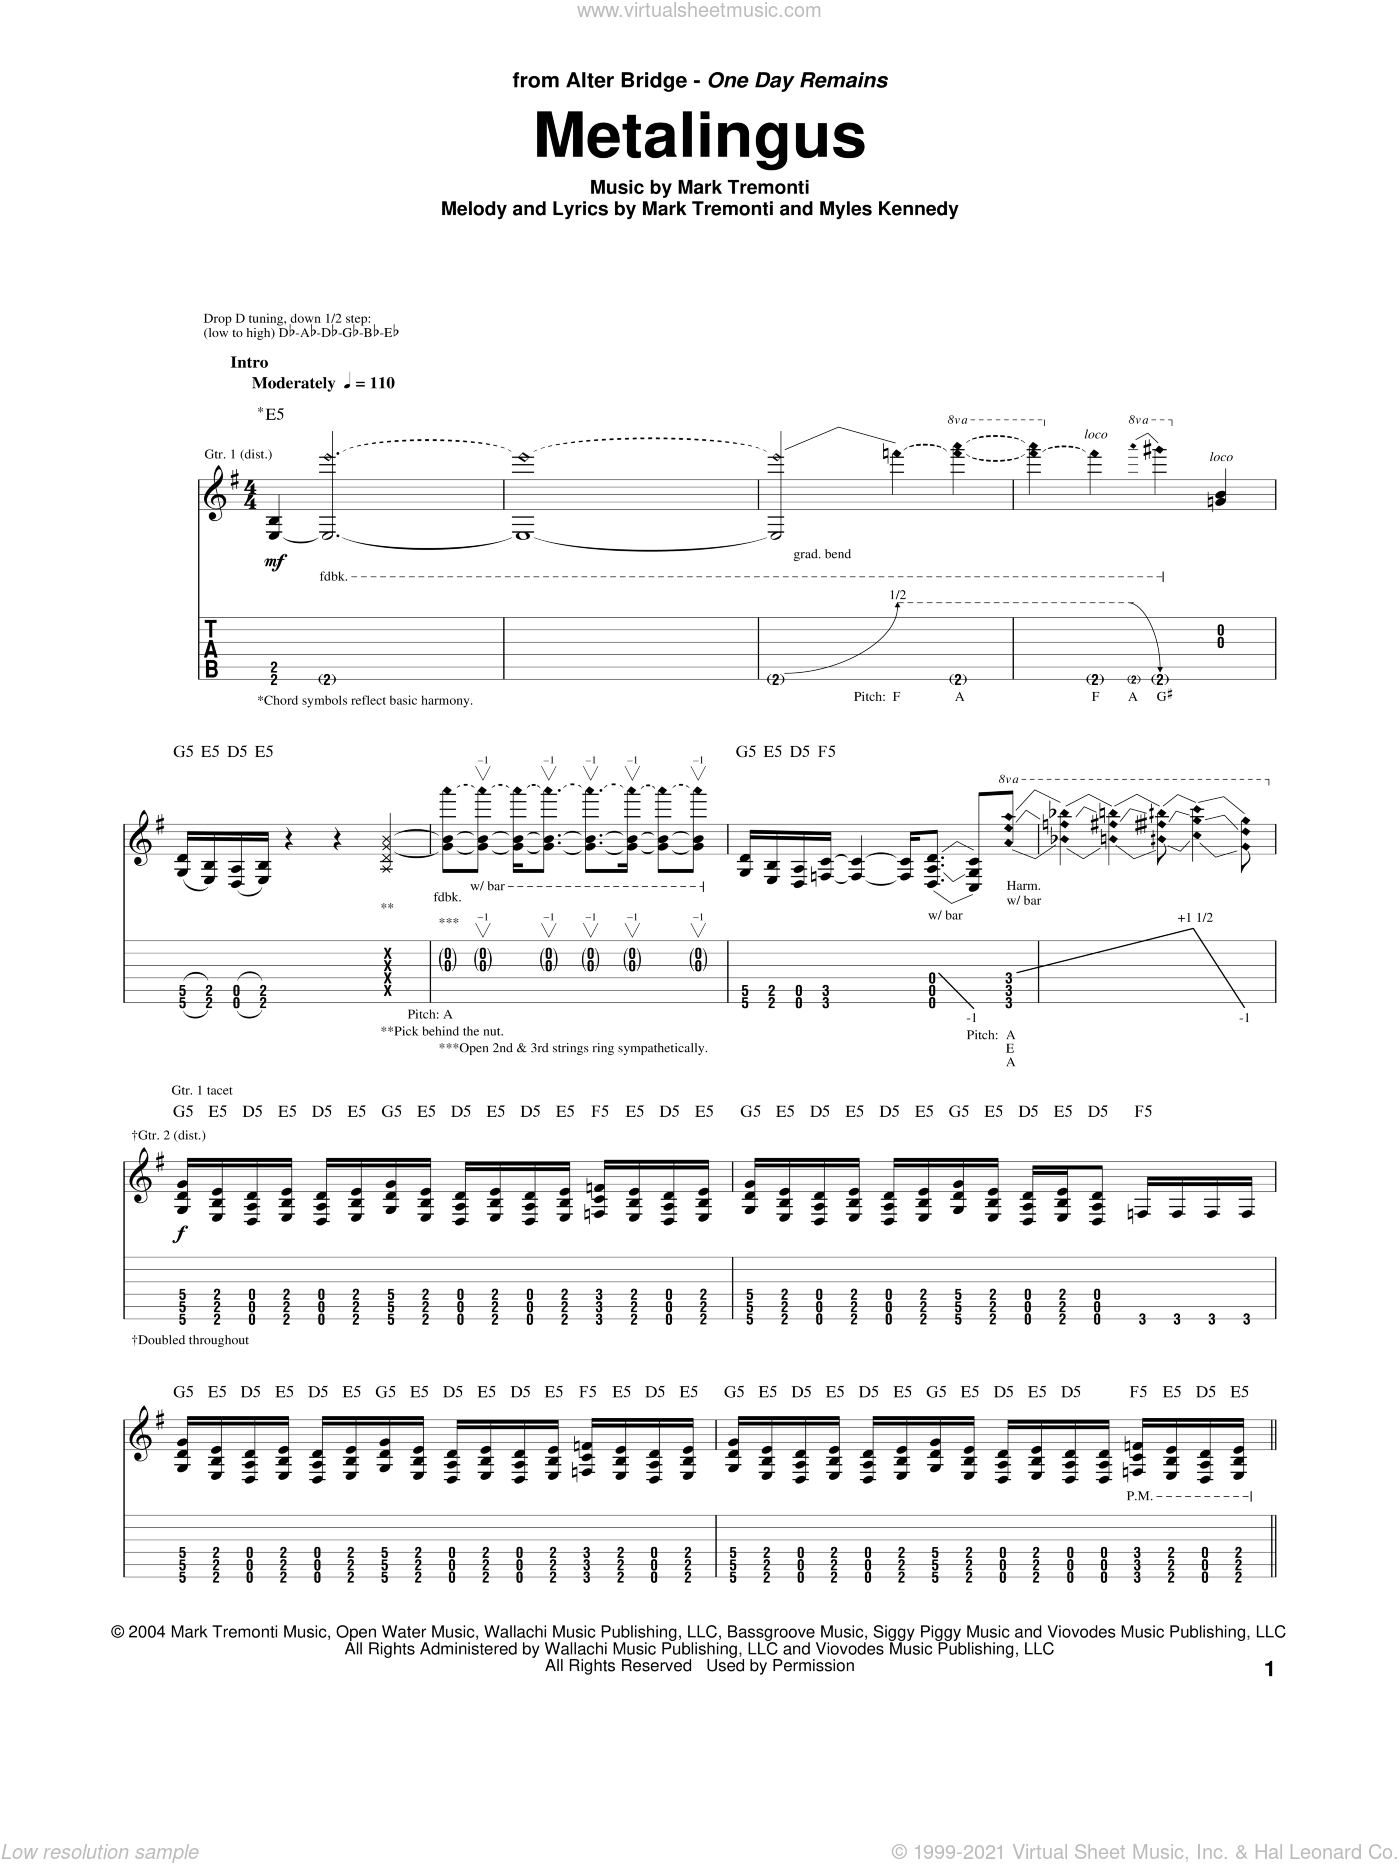 Metalingus sheet music for guitar (tablature) by Alter Bridge